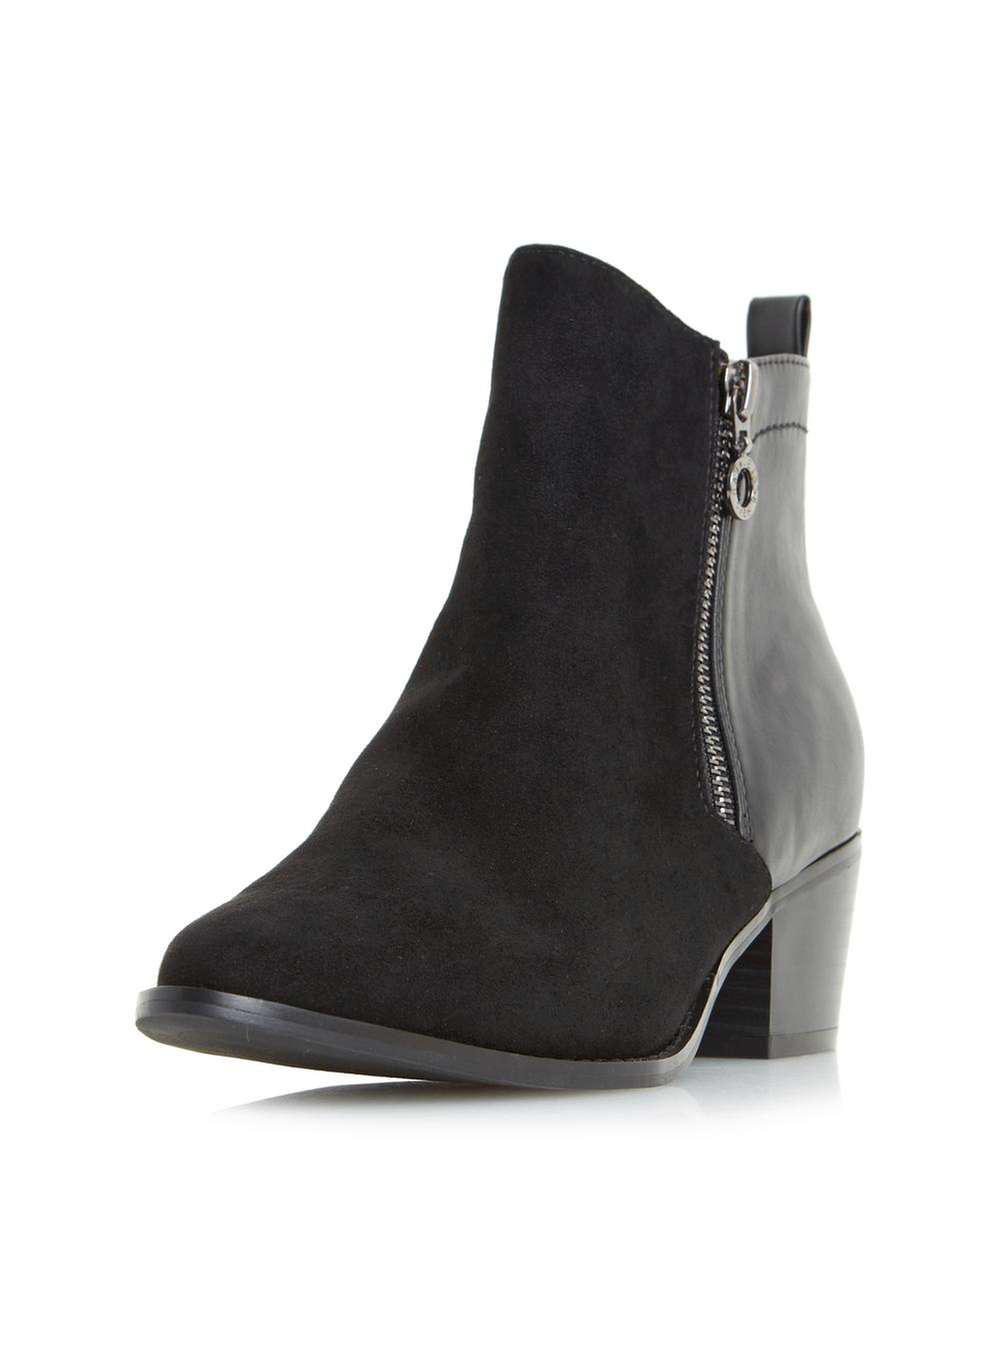 Footaction Dorothy Perkins Womens *Head Over Heels by Dune 'Pascalle' Ankle Boots- Real r4ec796z9U